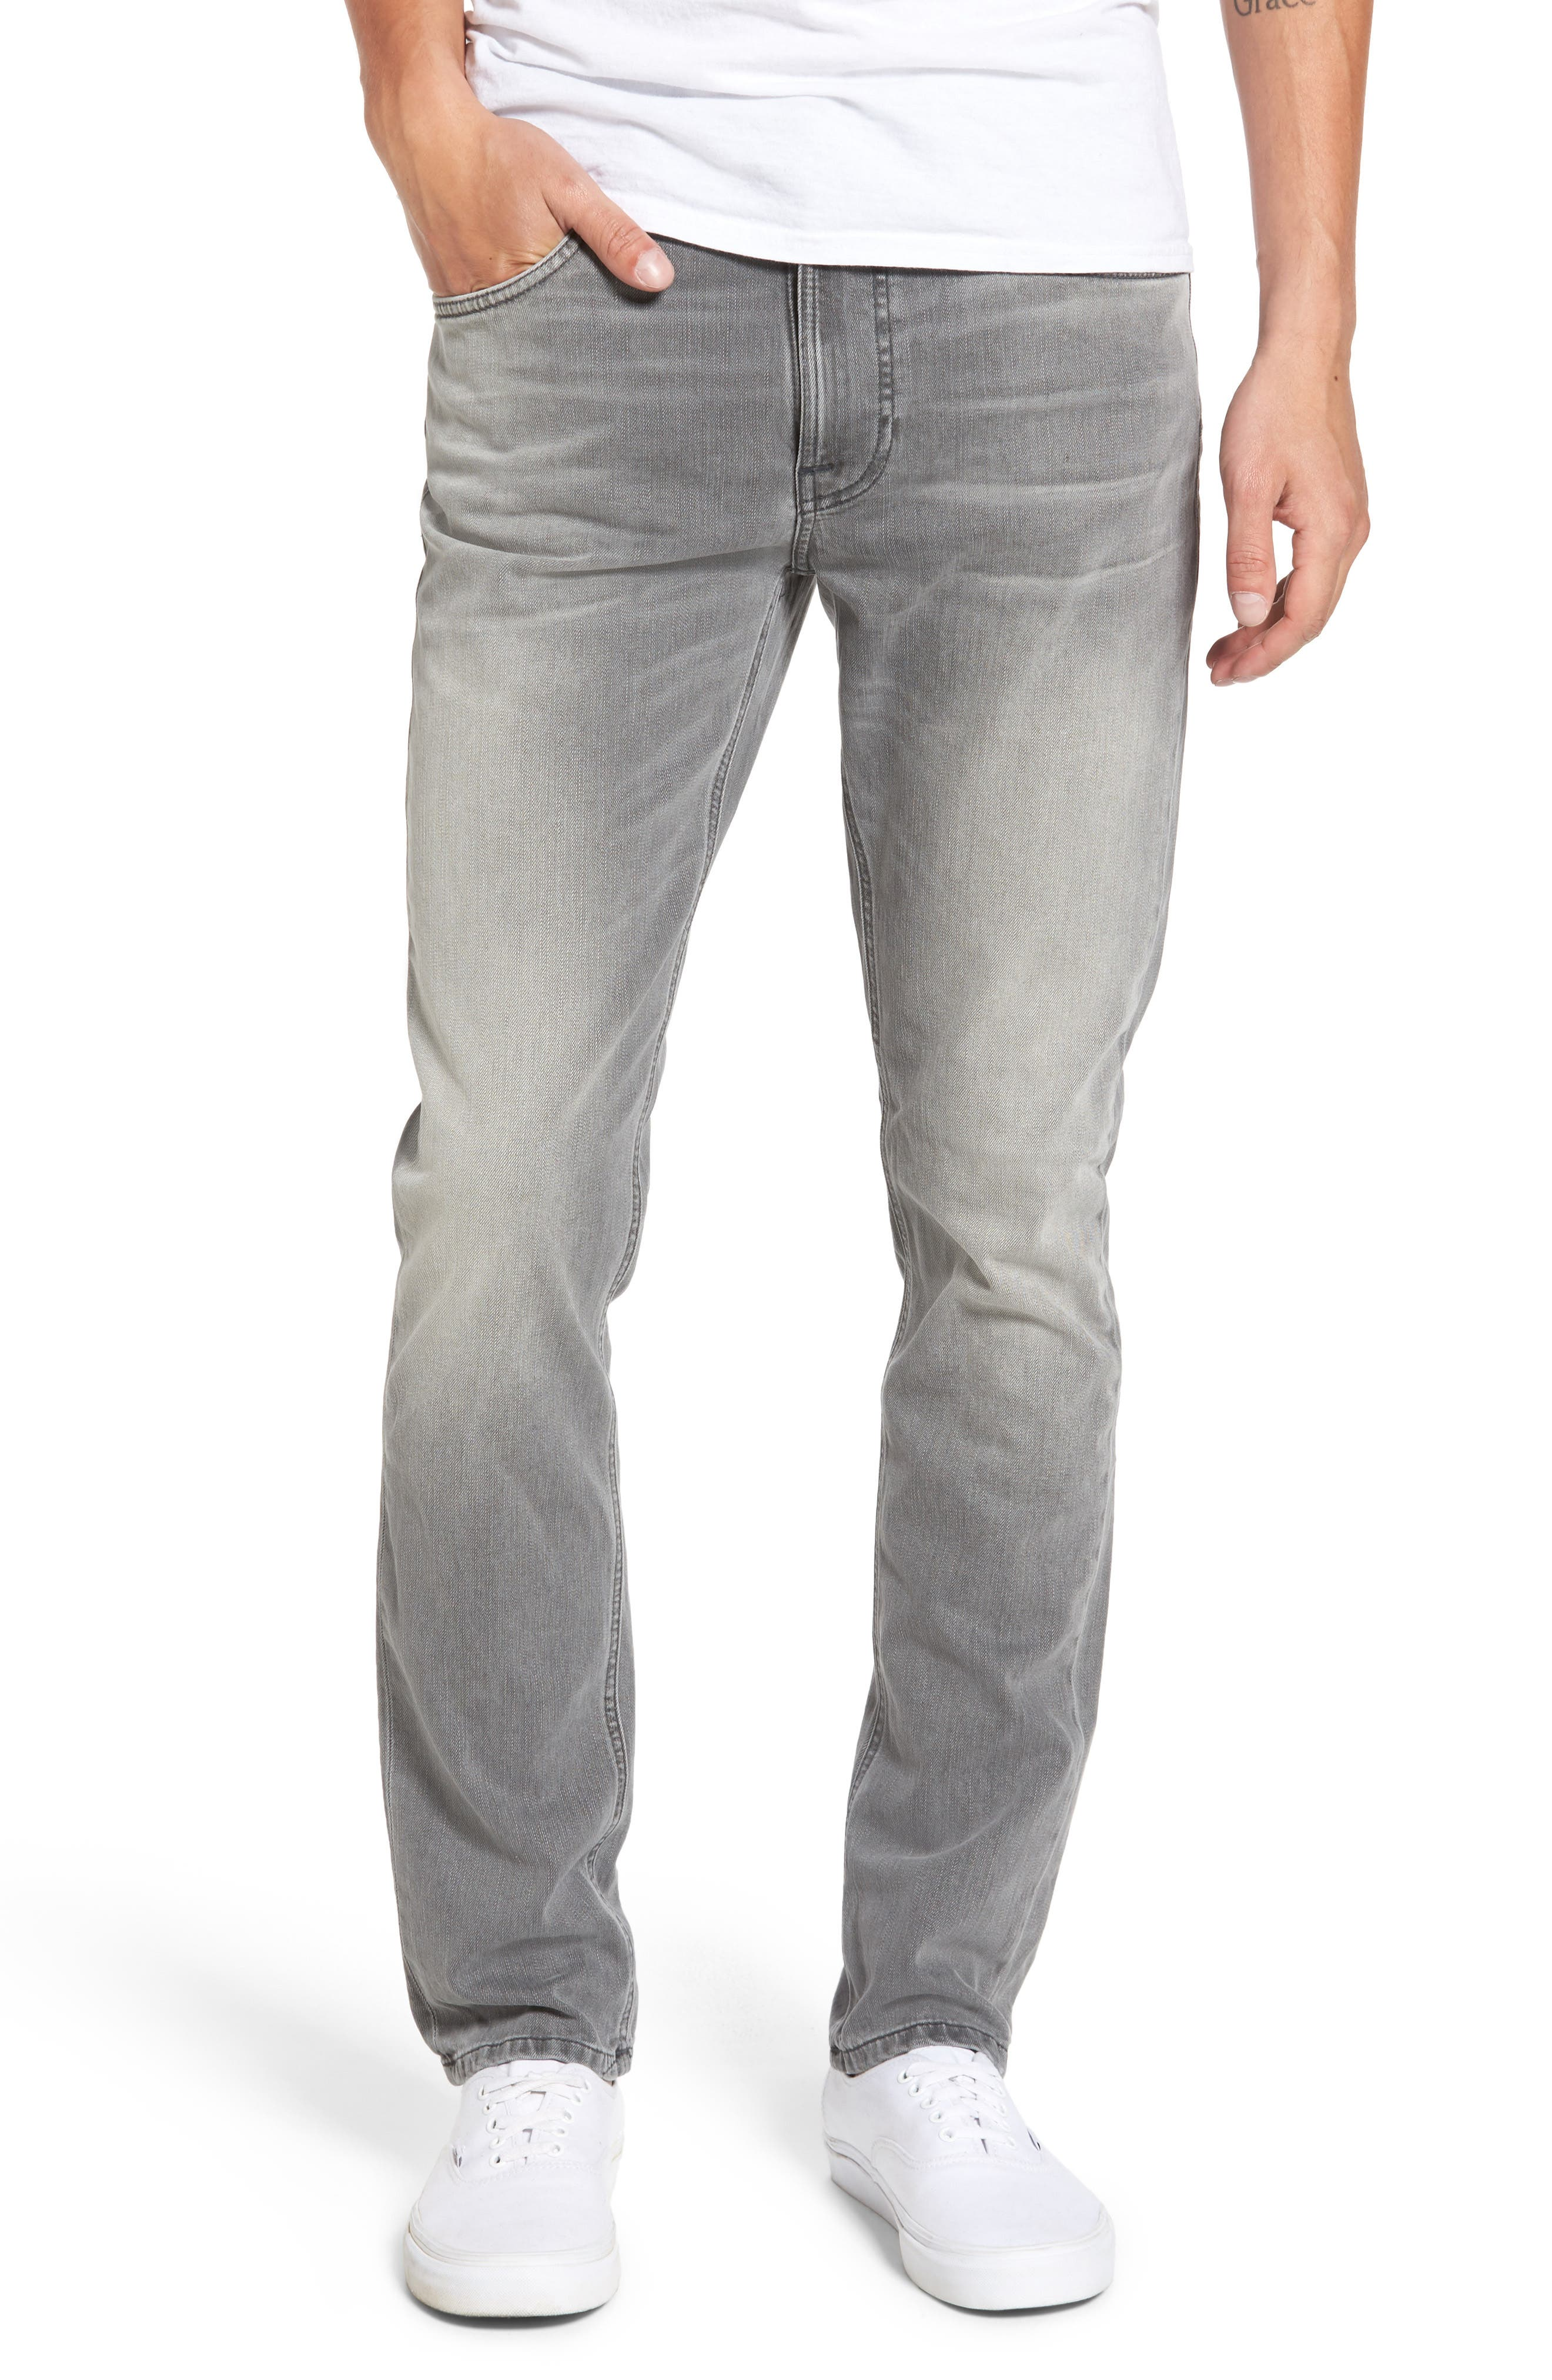 Lean Dean Slouchy Skinny Fit Jeans,                             Main thumbnail 1, color,                             060